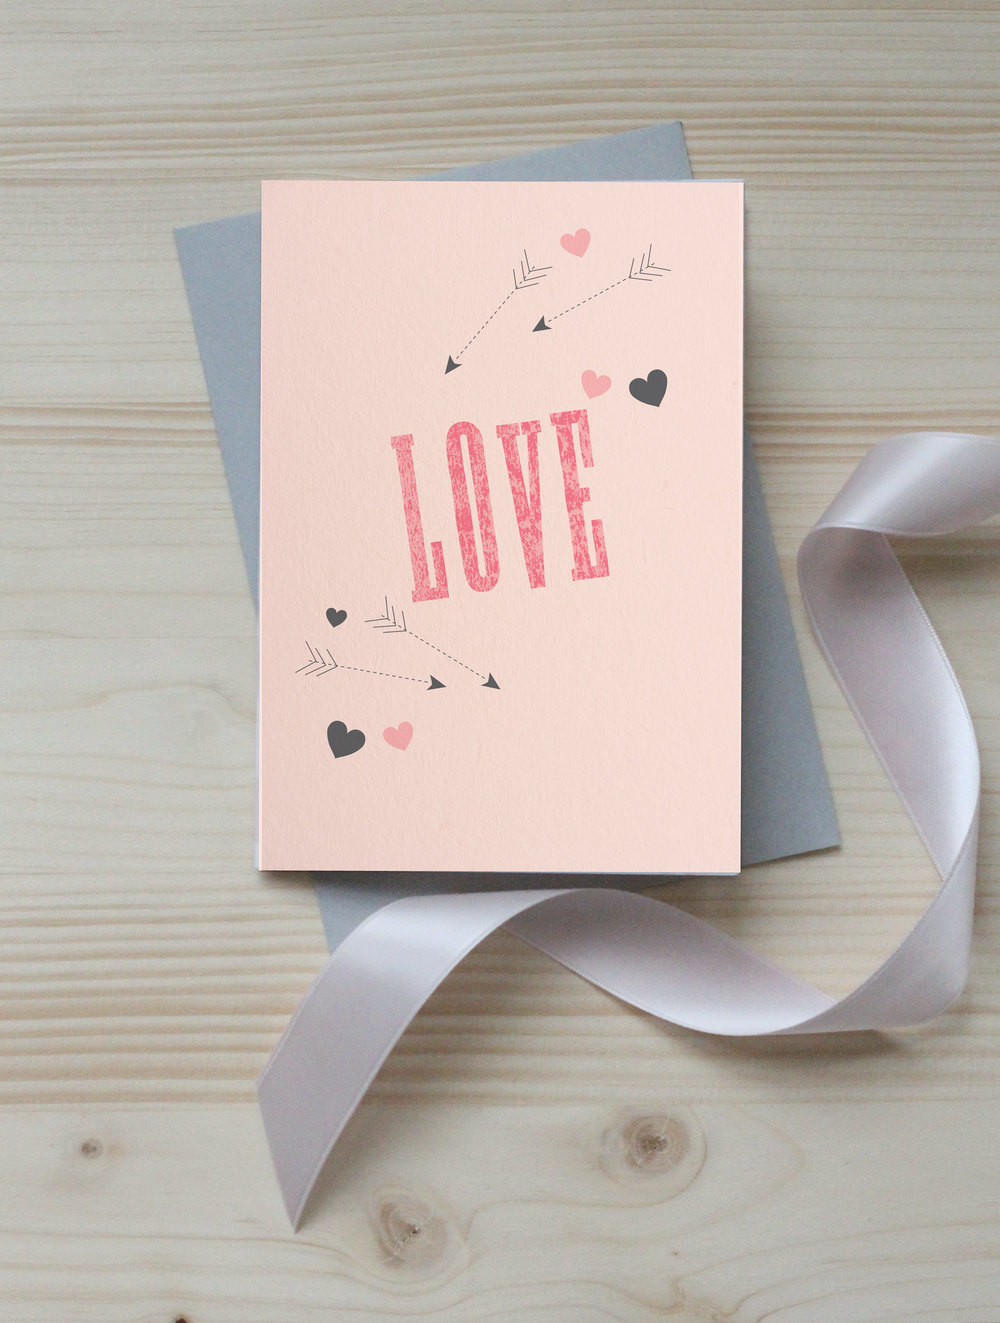 'Love' free Valentine's printable card